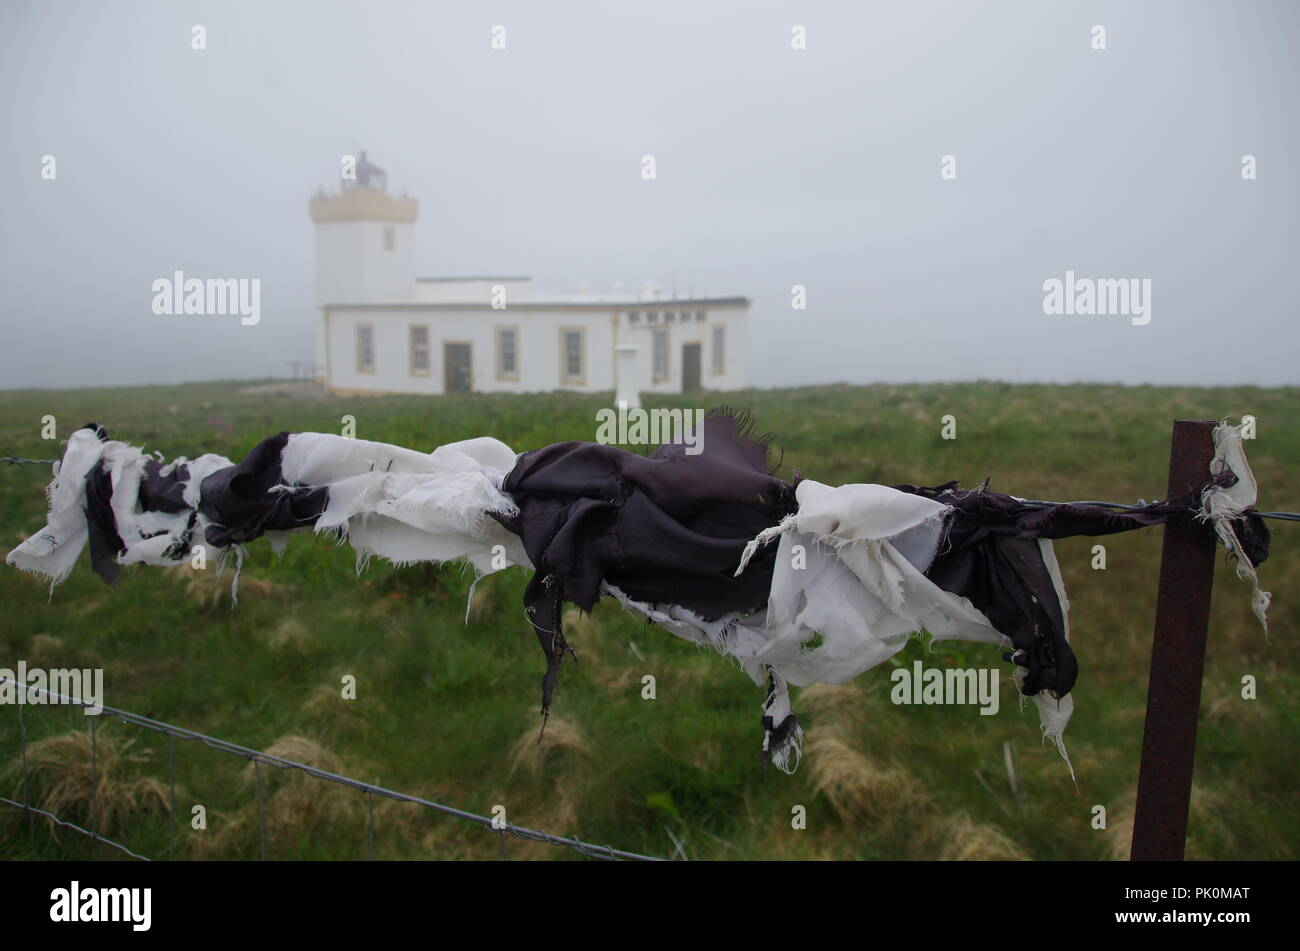 Duncansby Head Lighthouse. John o' groats (Duncansby head) to lands end. Cornwall. End to end trail. Caithness. Highlands. Scotland. UK - Stock Image